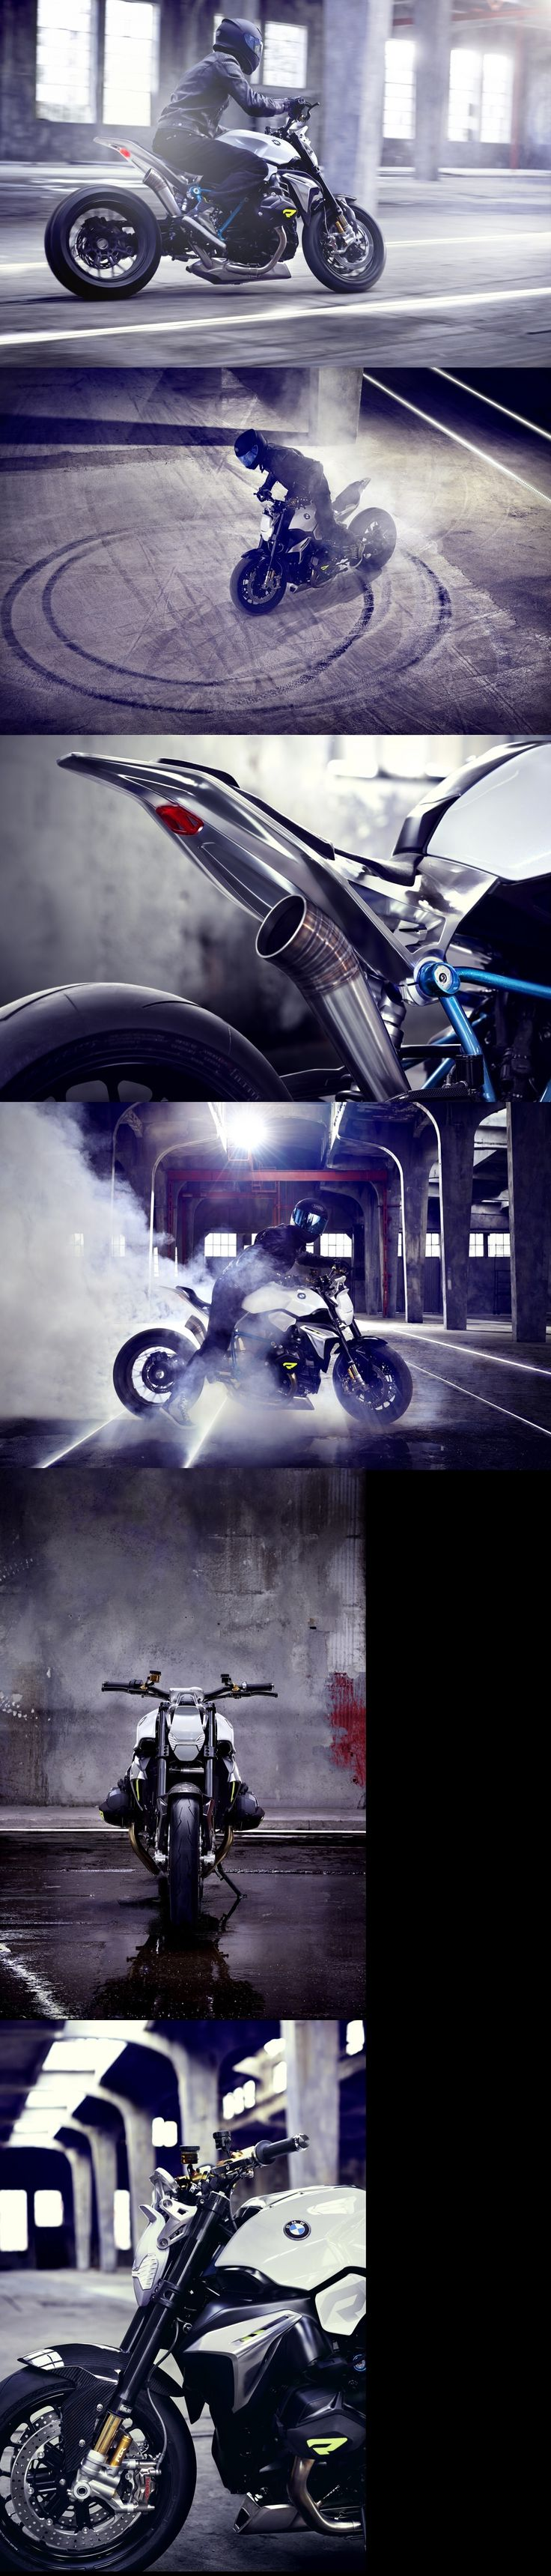 When #BMW i8 Meets a #Motorcycle, You Get This Slick Concept #Roadster Bike